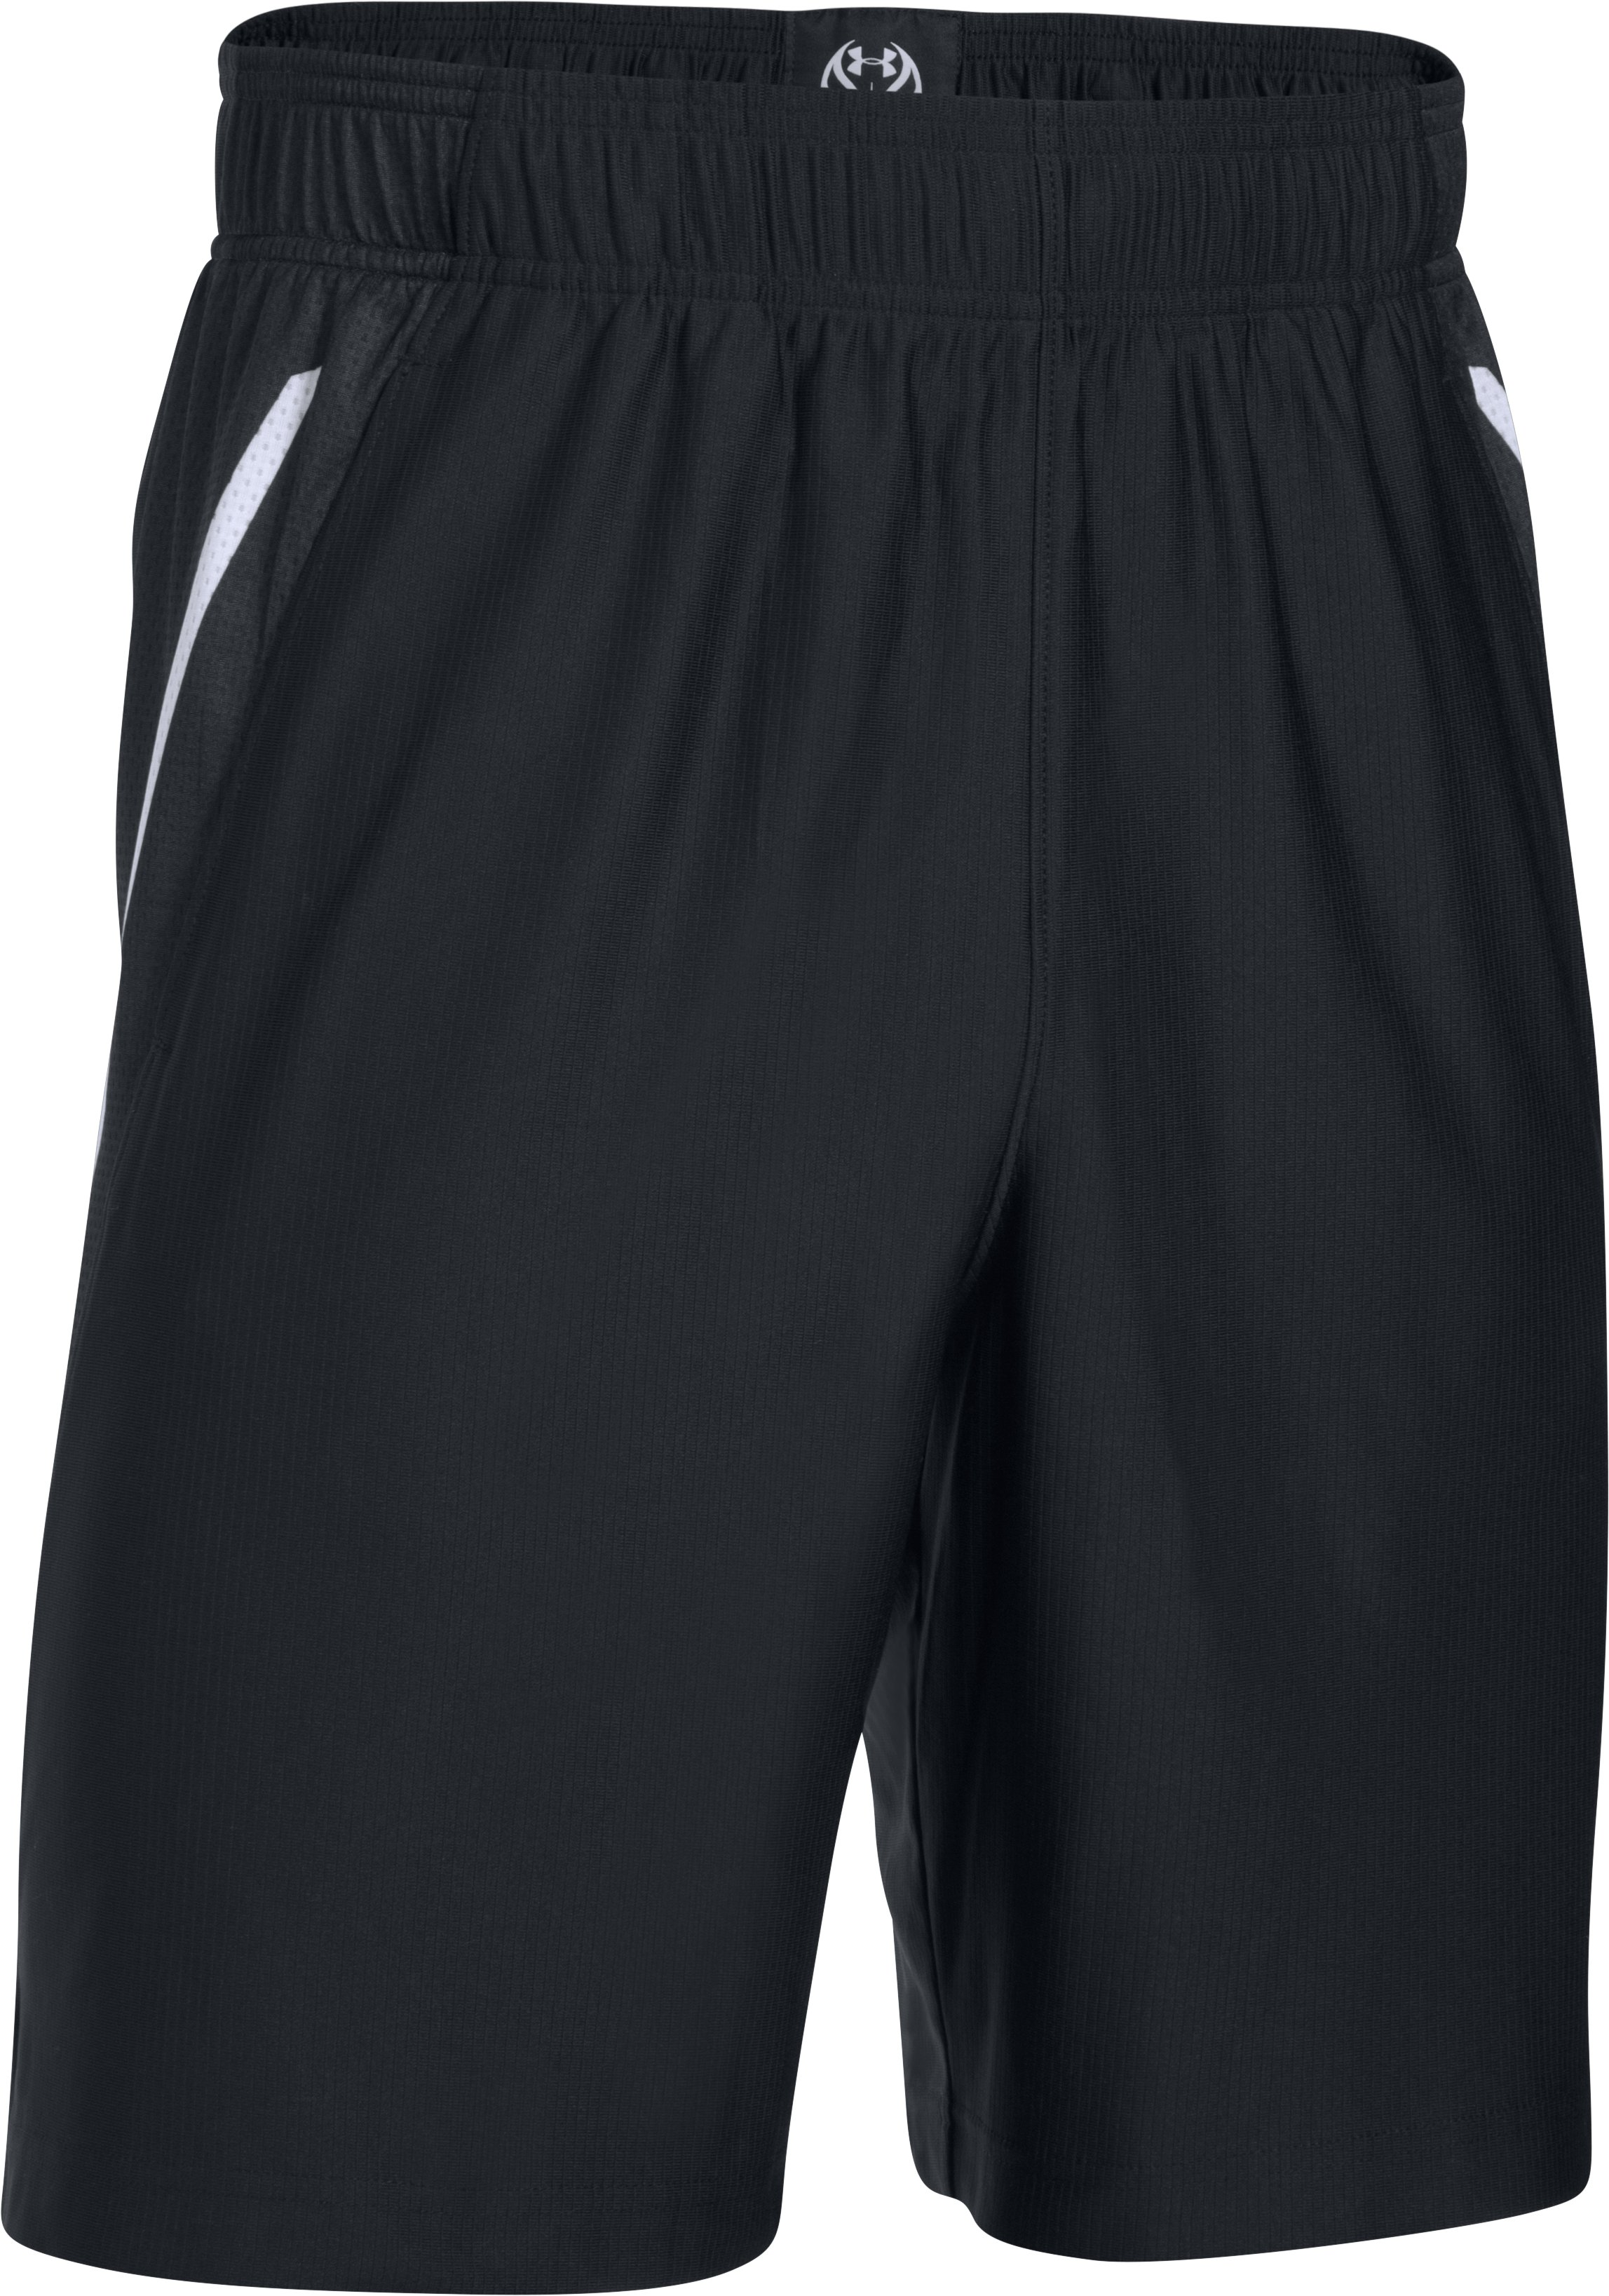 "Men's UA Team 9"" Shorts, Black , undefined"